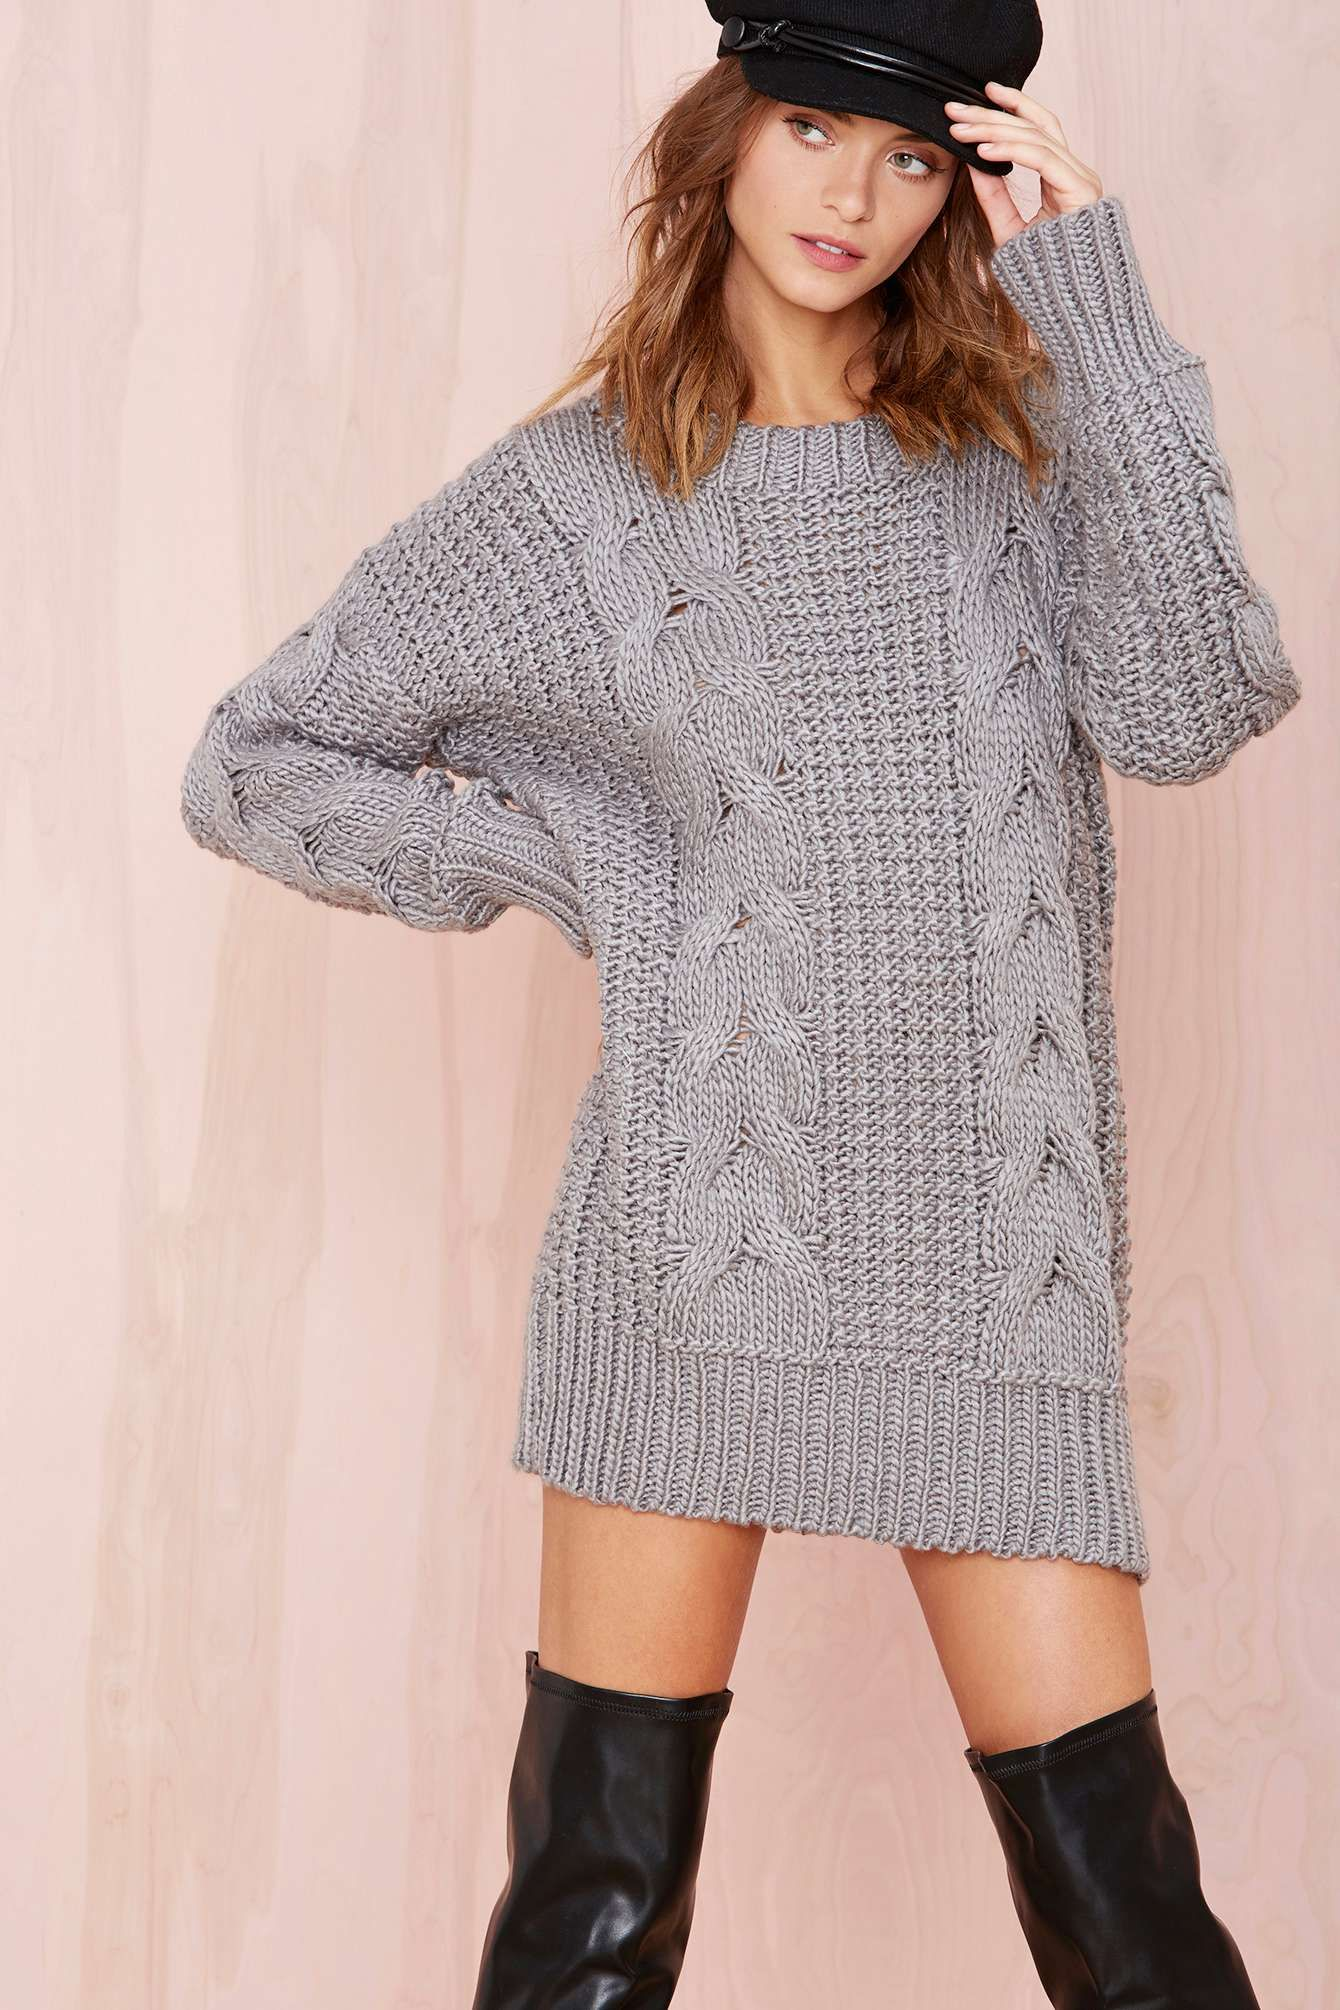 Look - Sweater Cable dress video